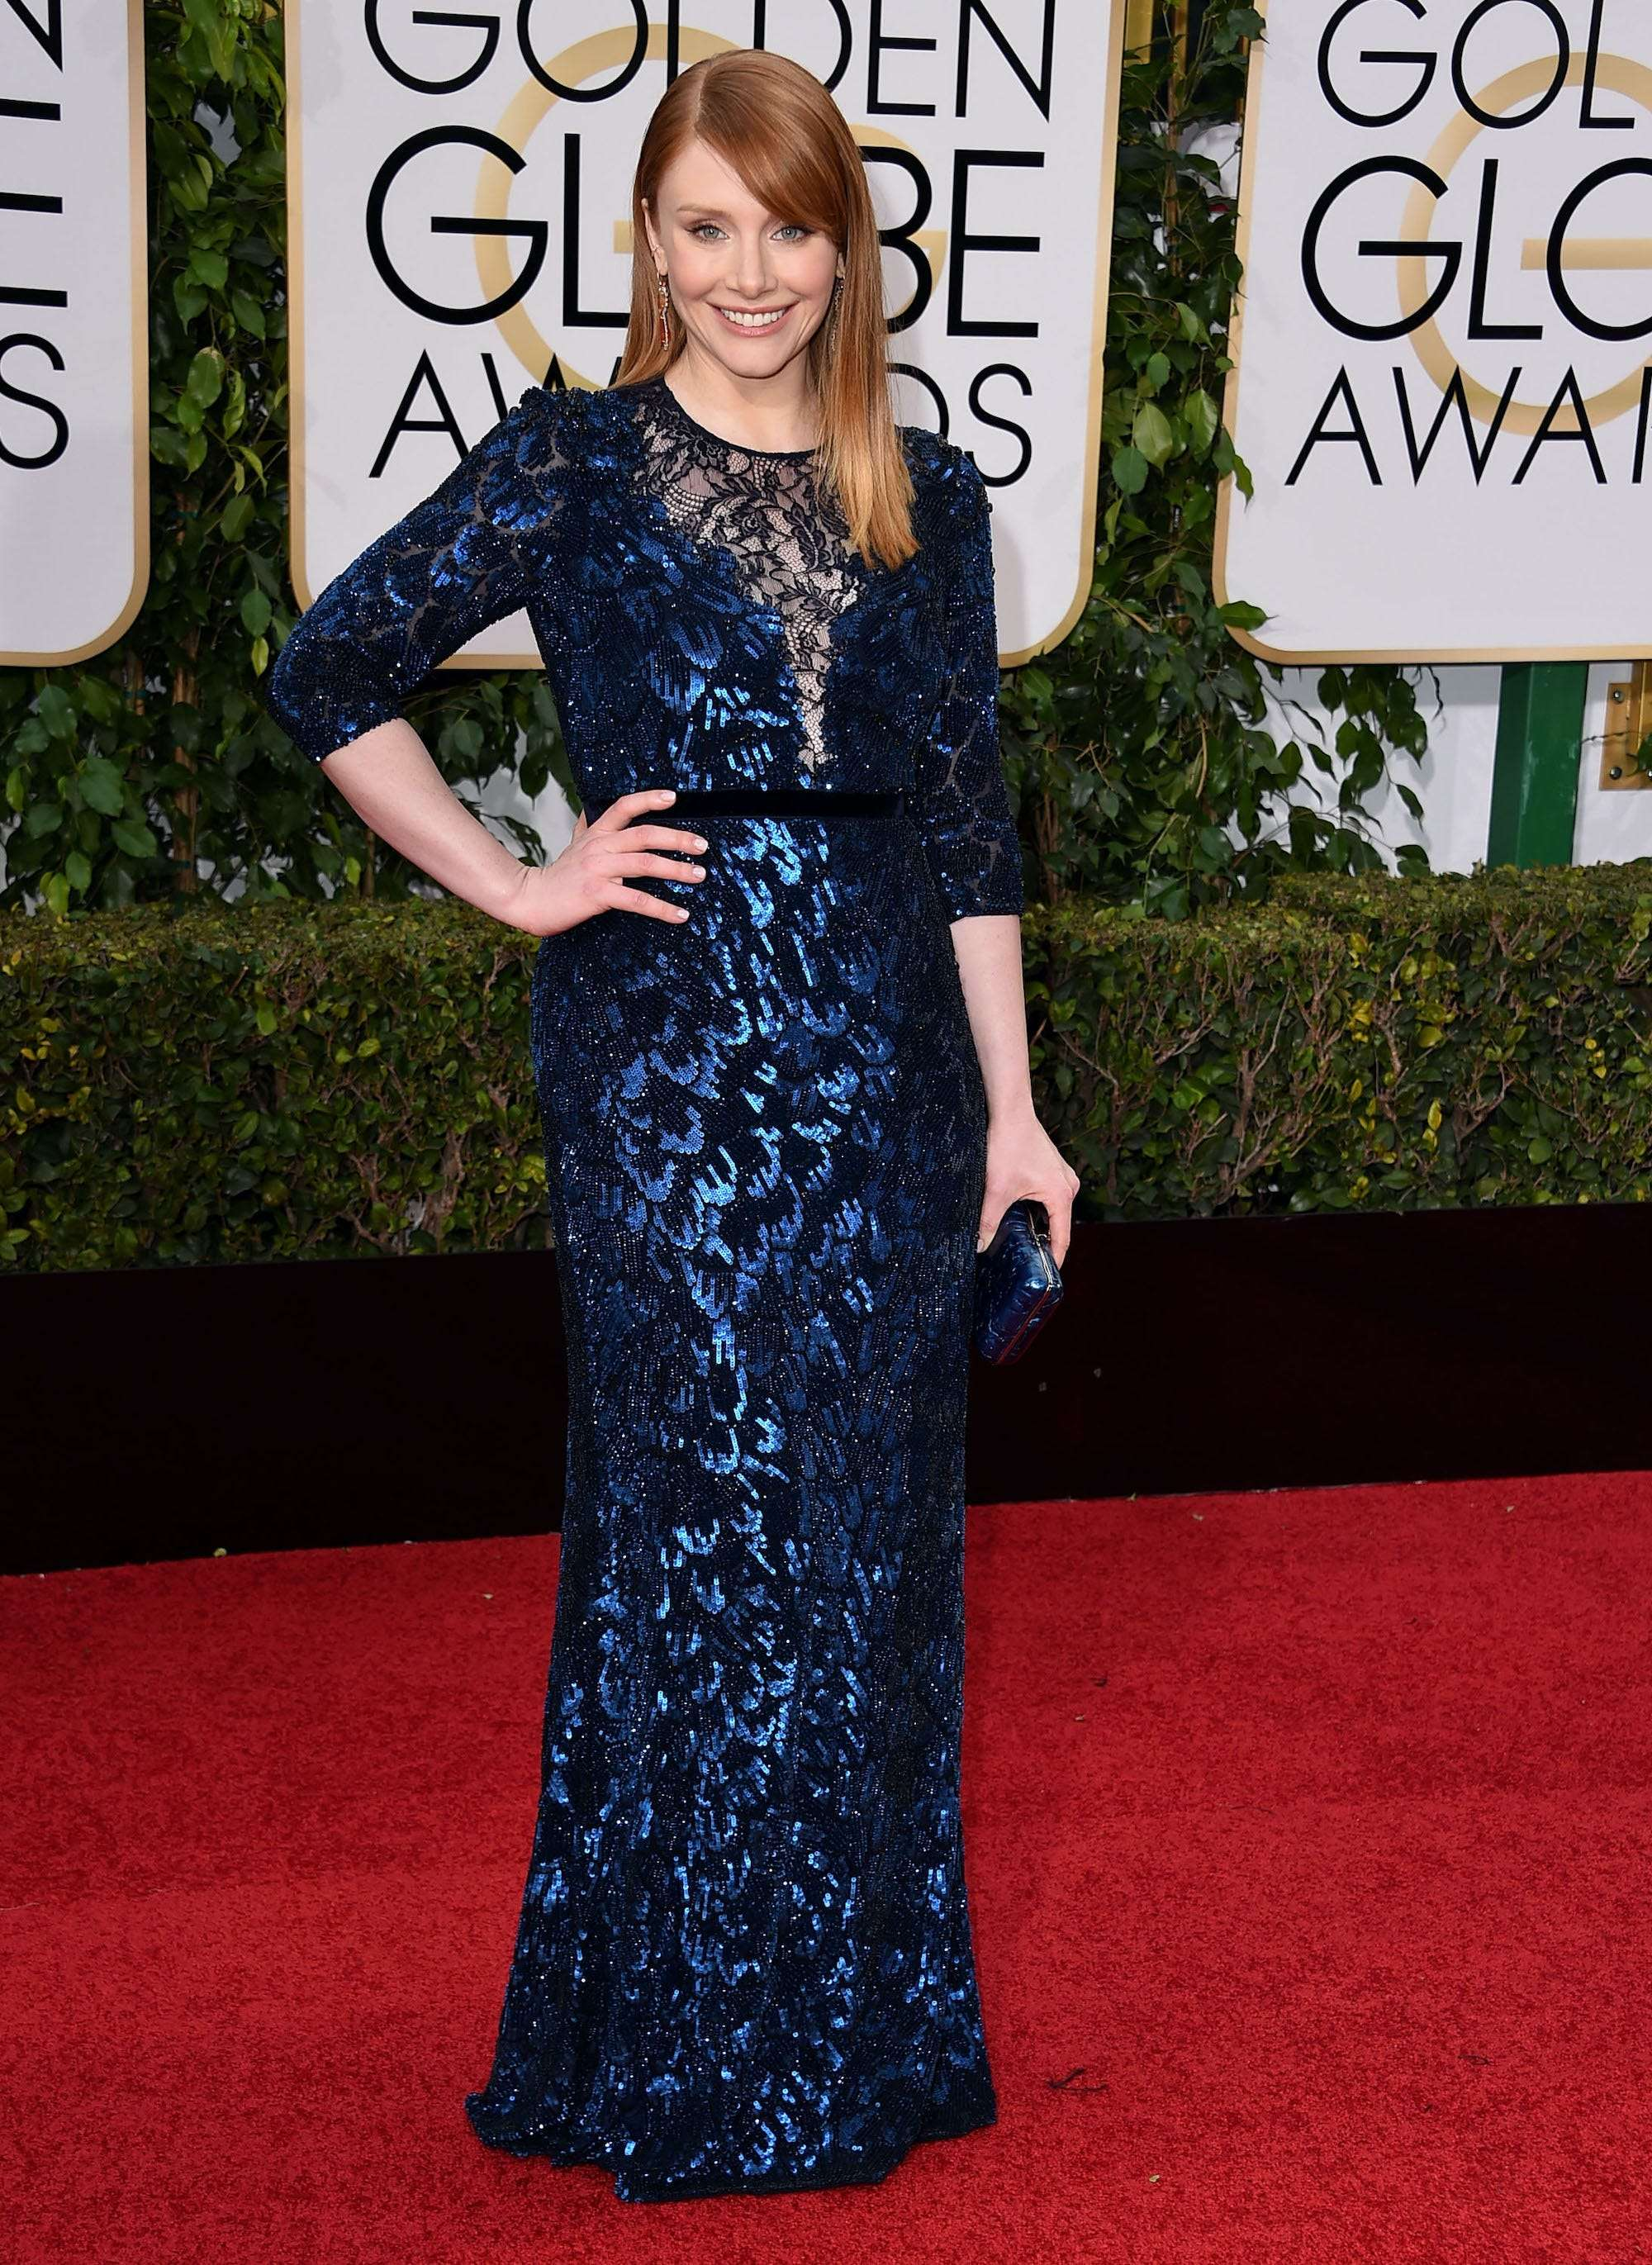 Bryce Dallas Howard wore a secondhand dress and shoes she already owned to the Golden Globes